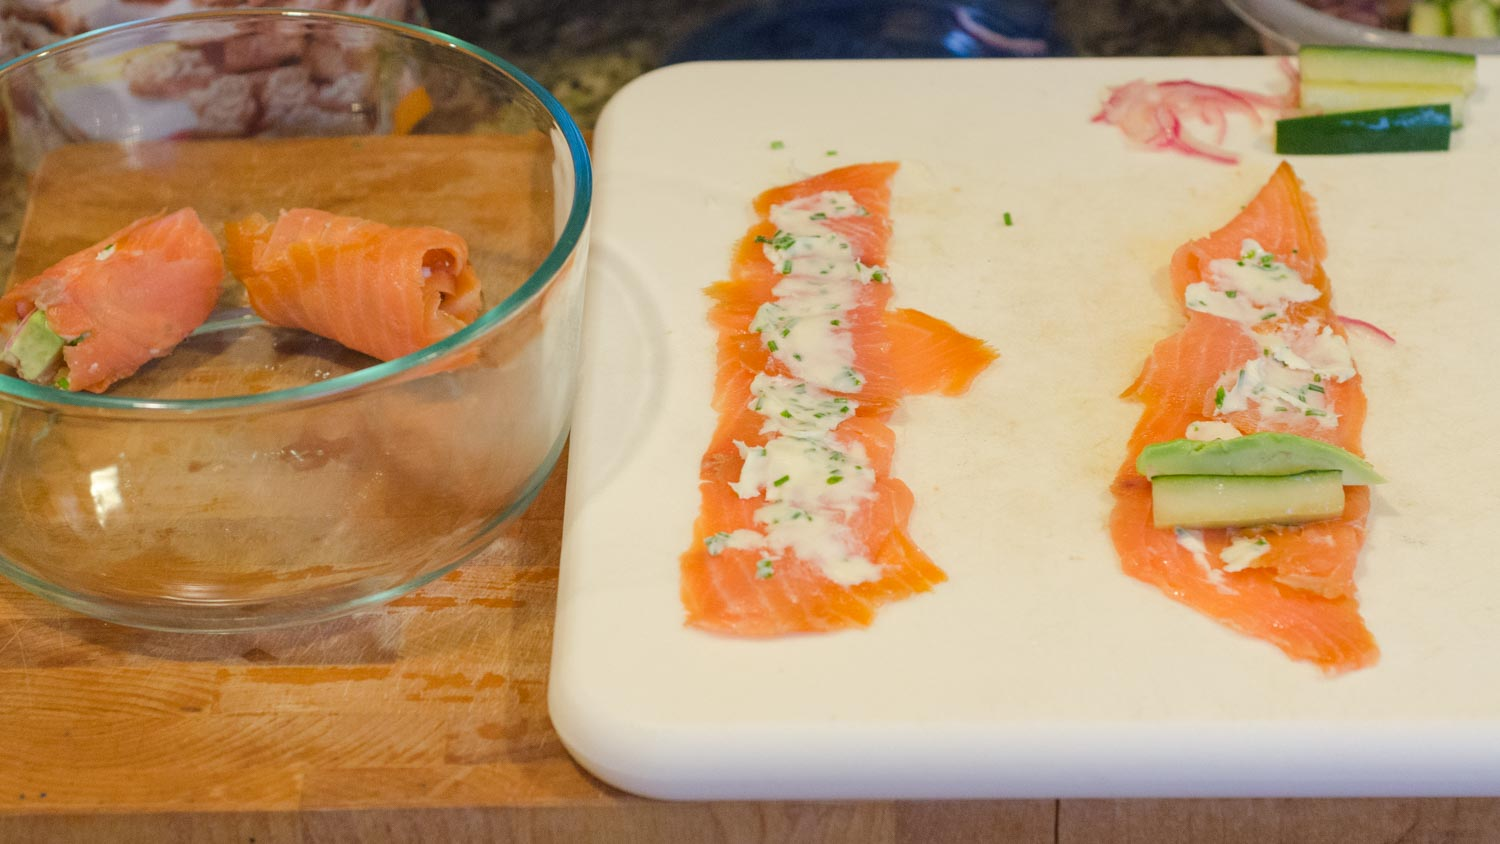 Preparing Smoked Salmon Rolls with Compound Butter